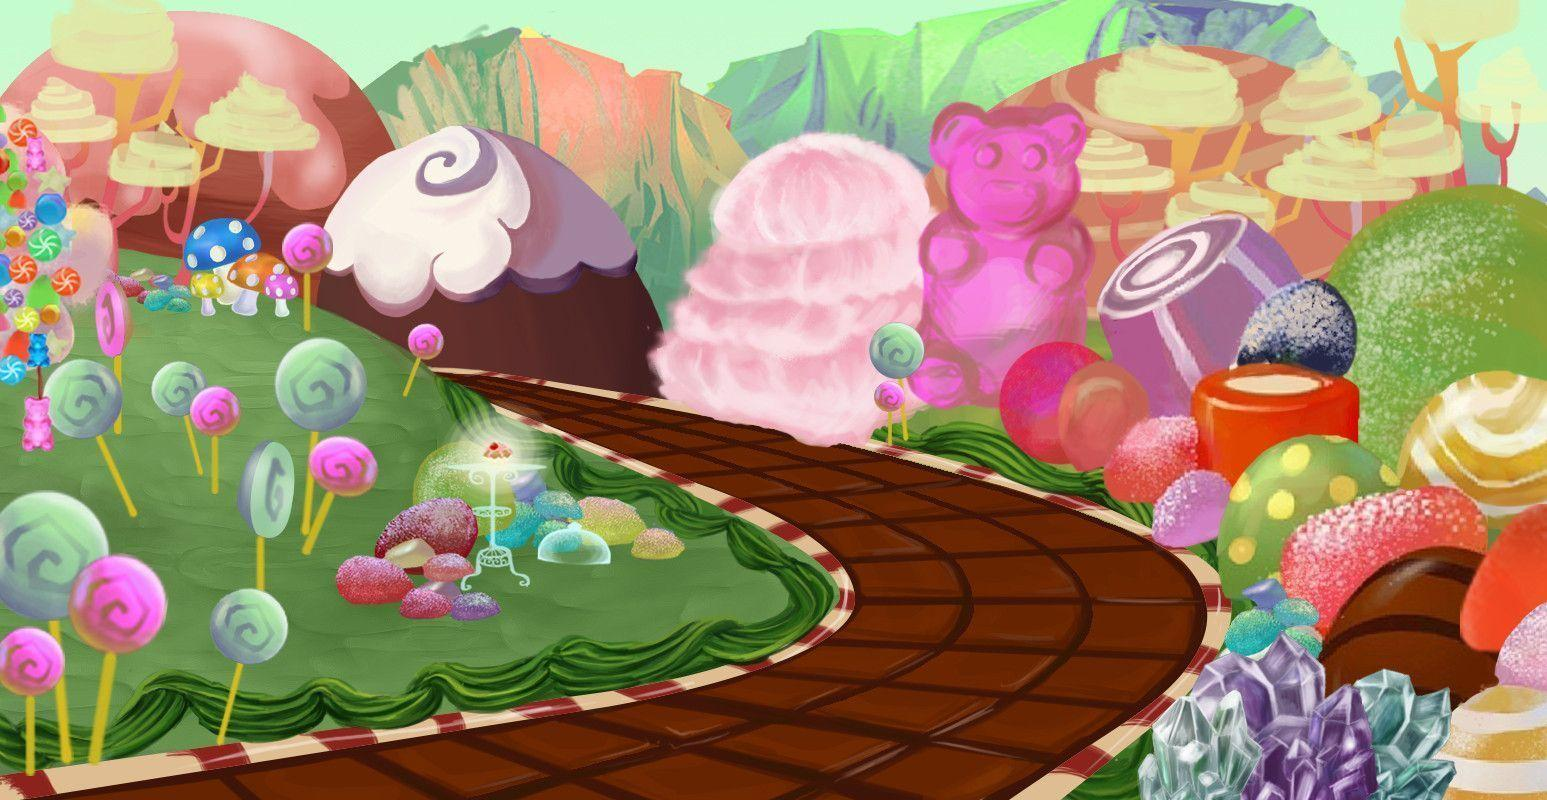 Wallpaper Cupcake Cute Candyland Backgrounds Wallpaper Cave